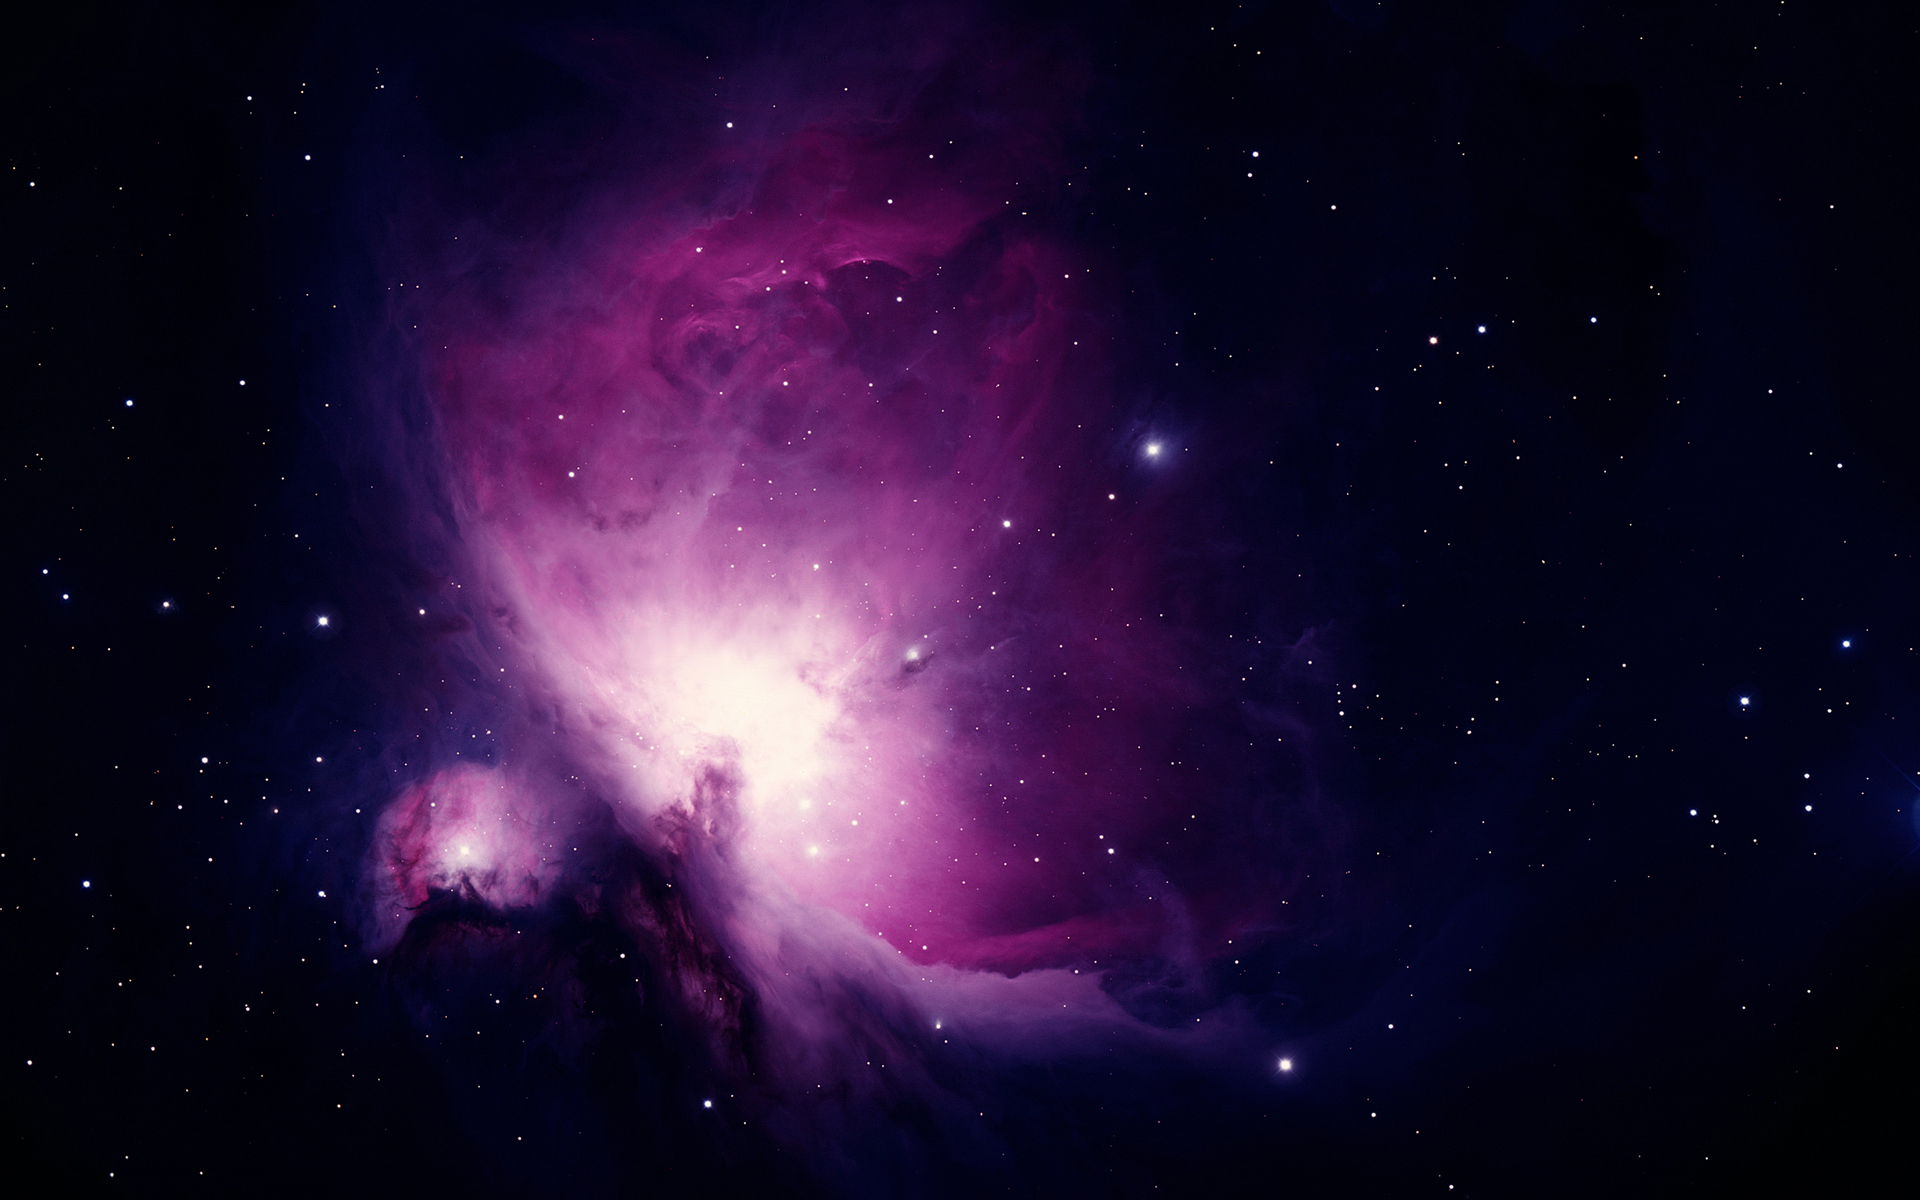 Hd Galaxy Wallpaper 002